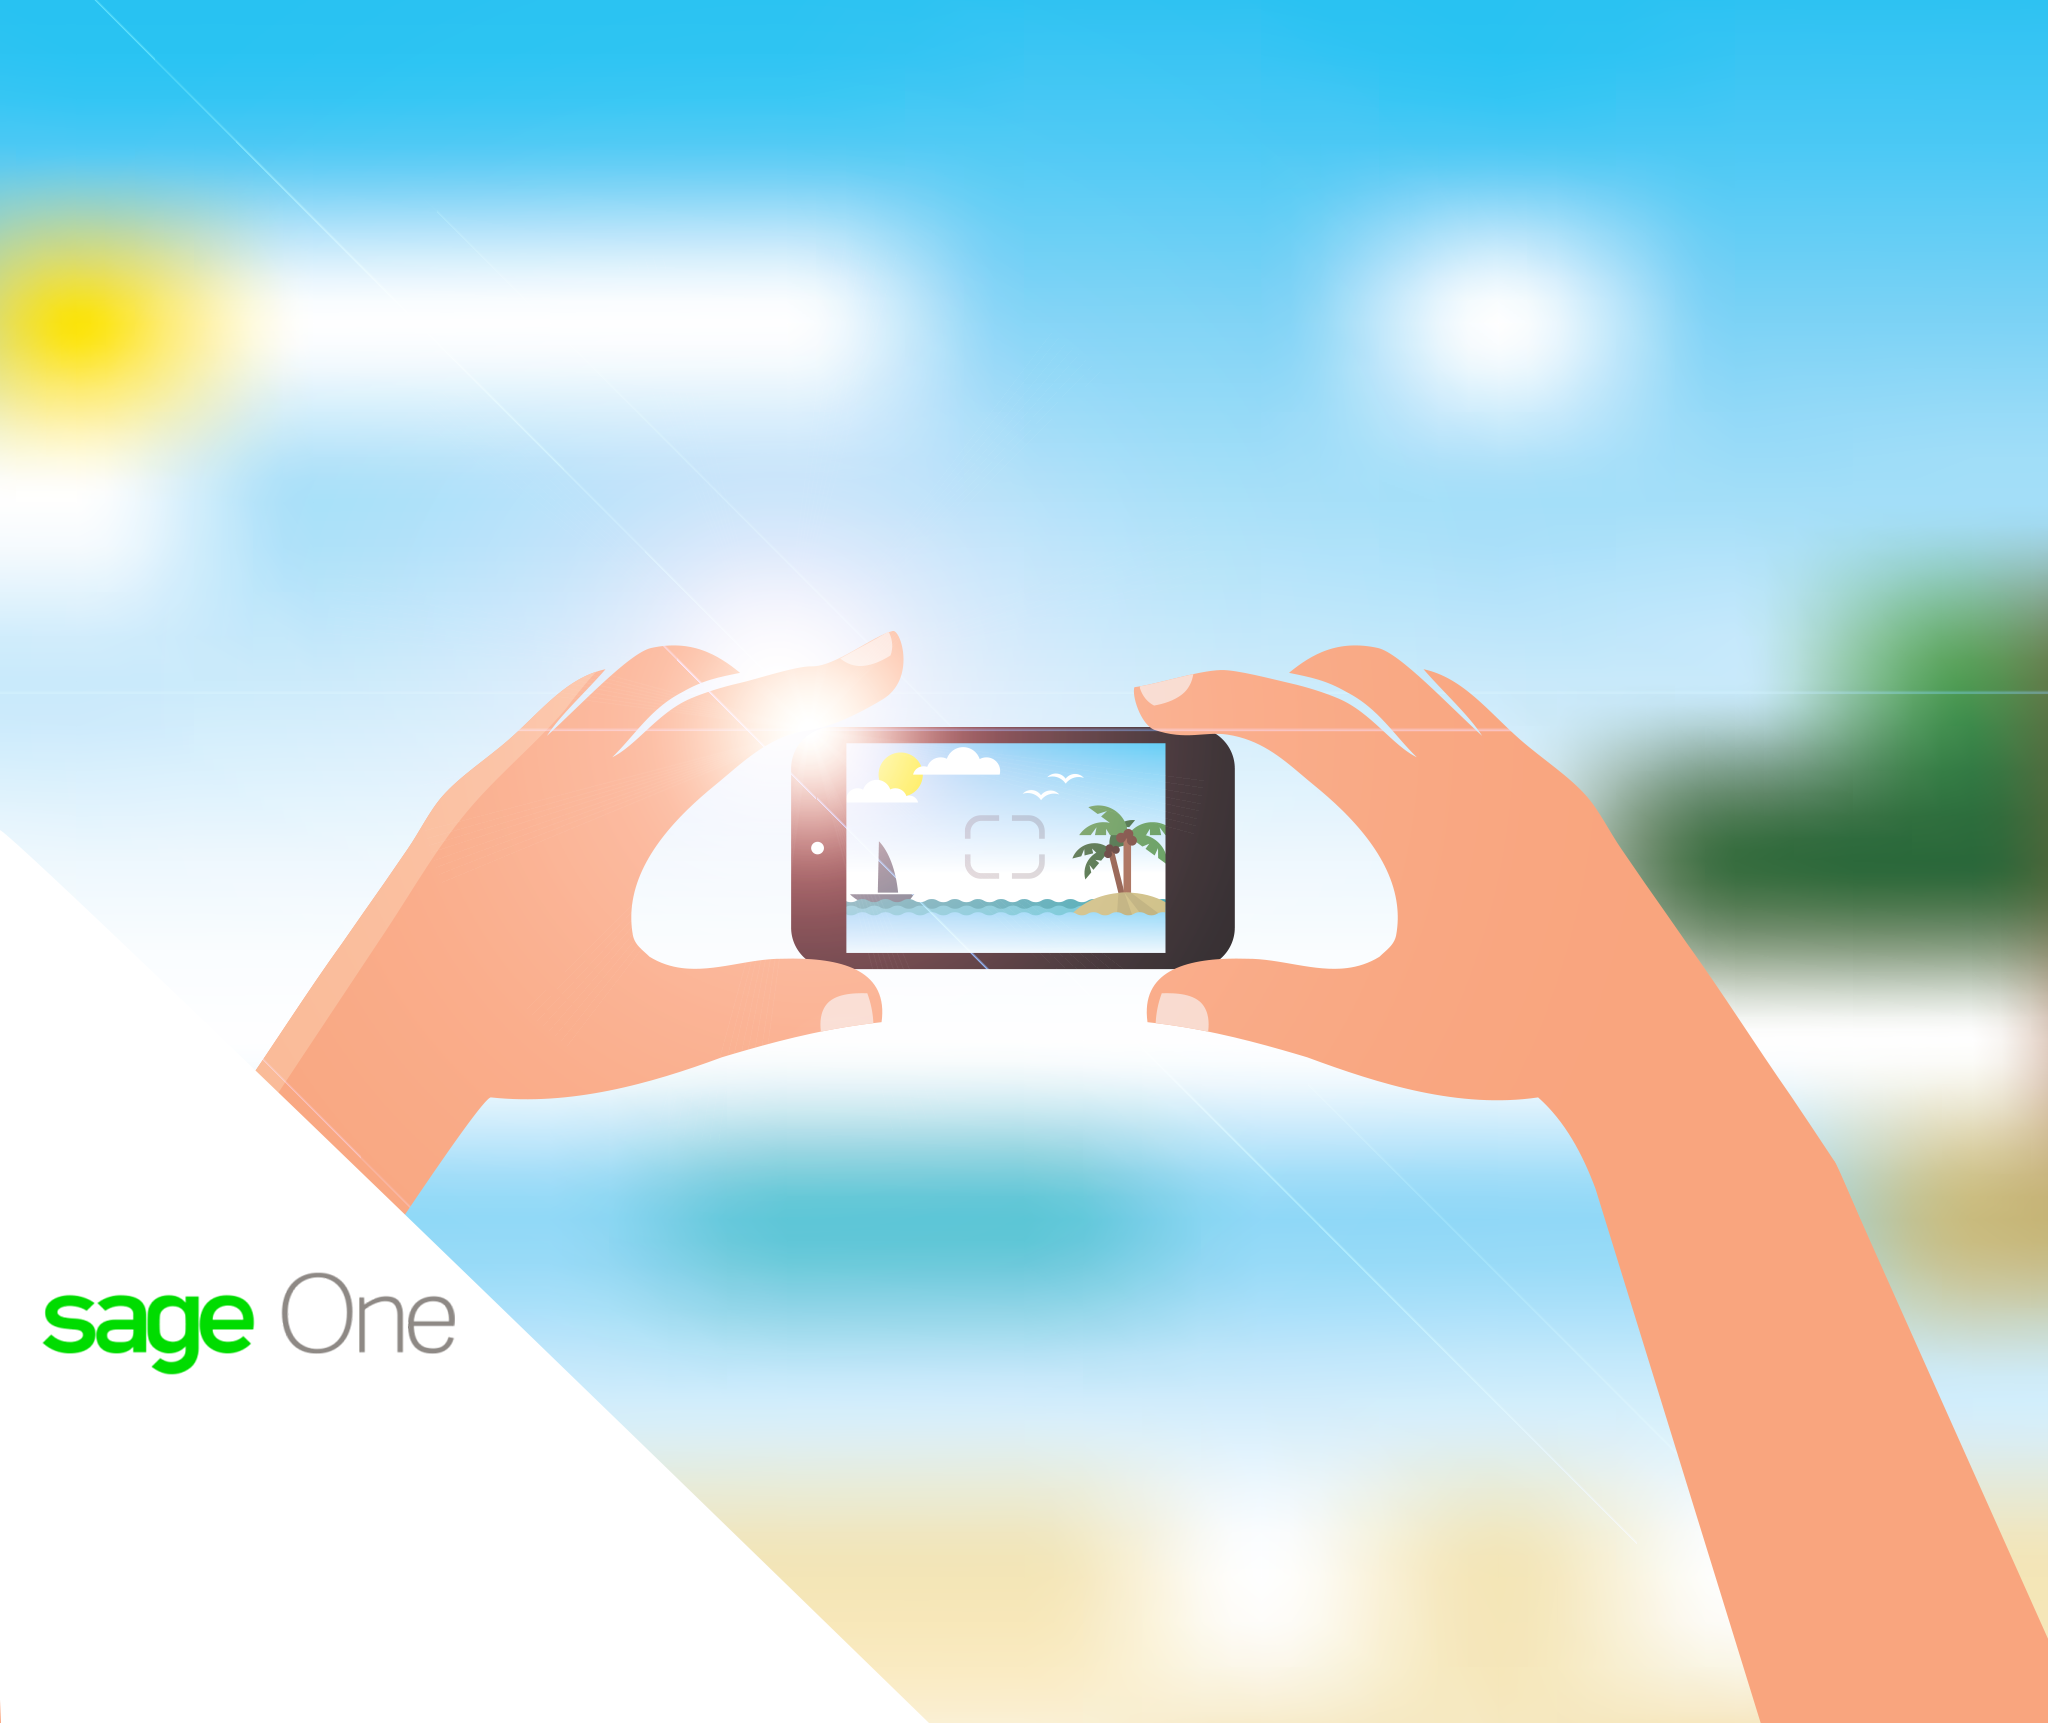 sageone_uk_postplan24maio-4junho_start-of-summer-holidays_blogpost-1